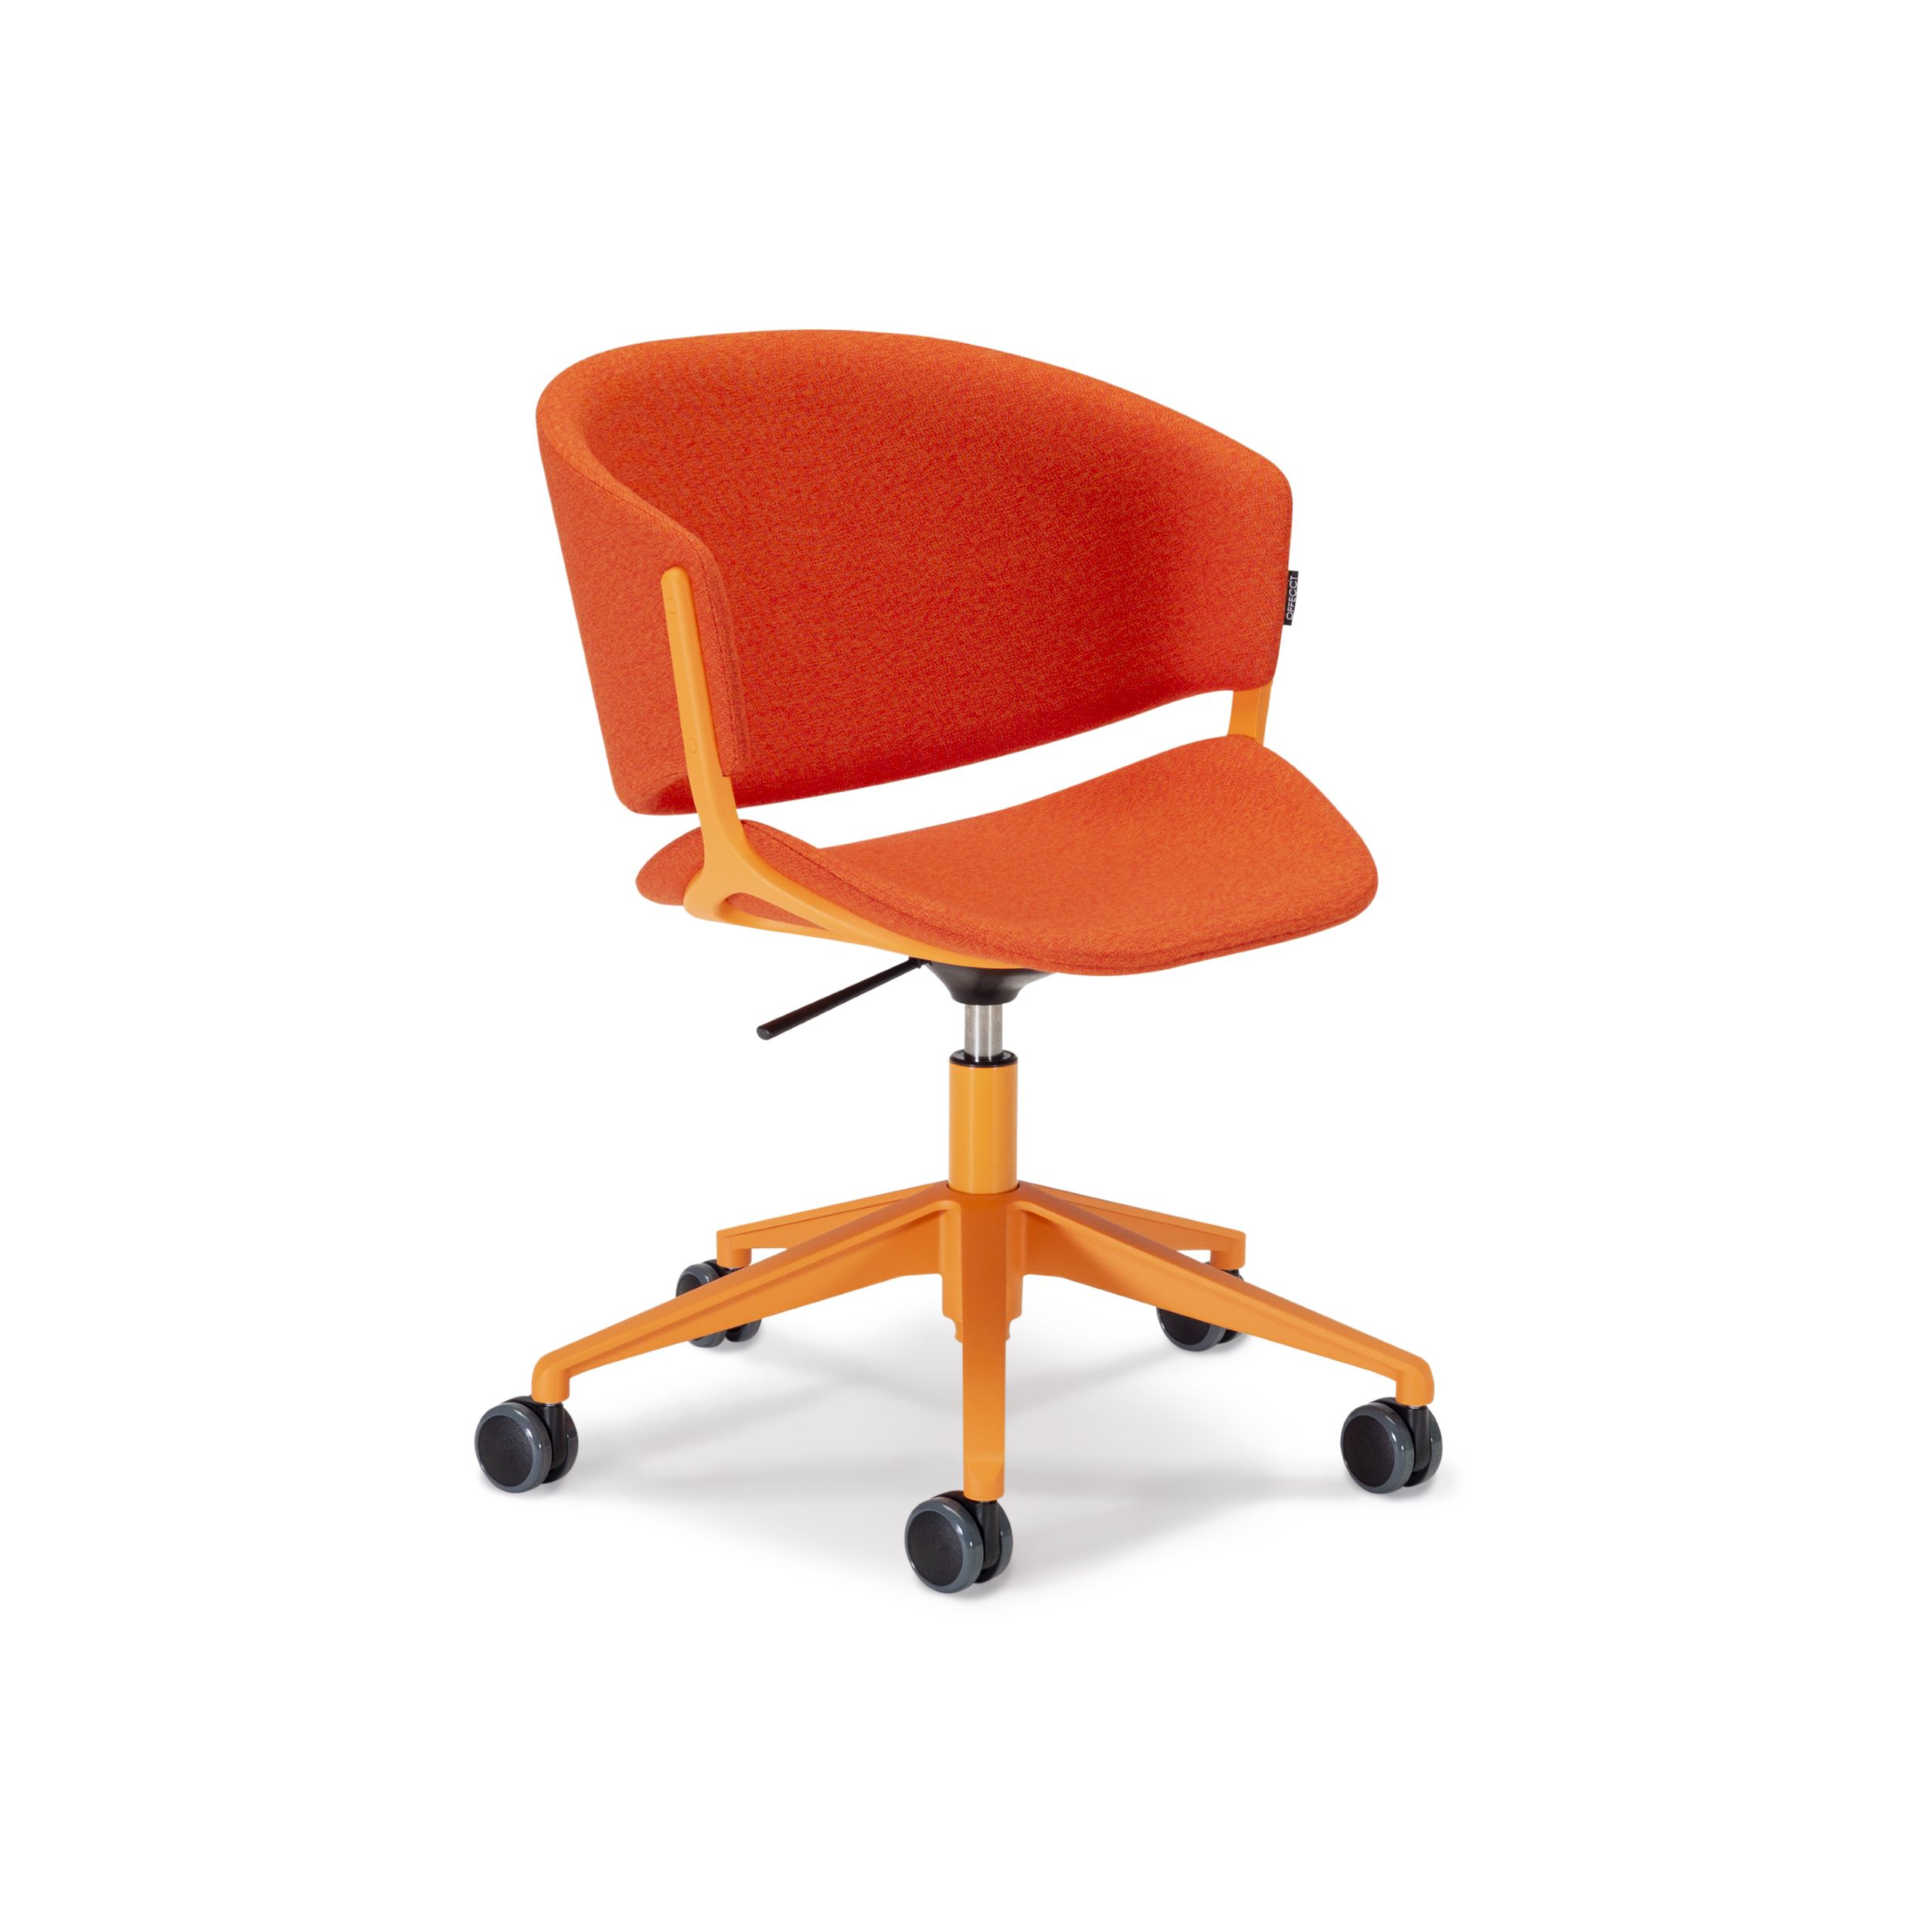 Phoenix Chair With Wheels For Offices Luca Nichetto